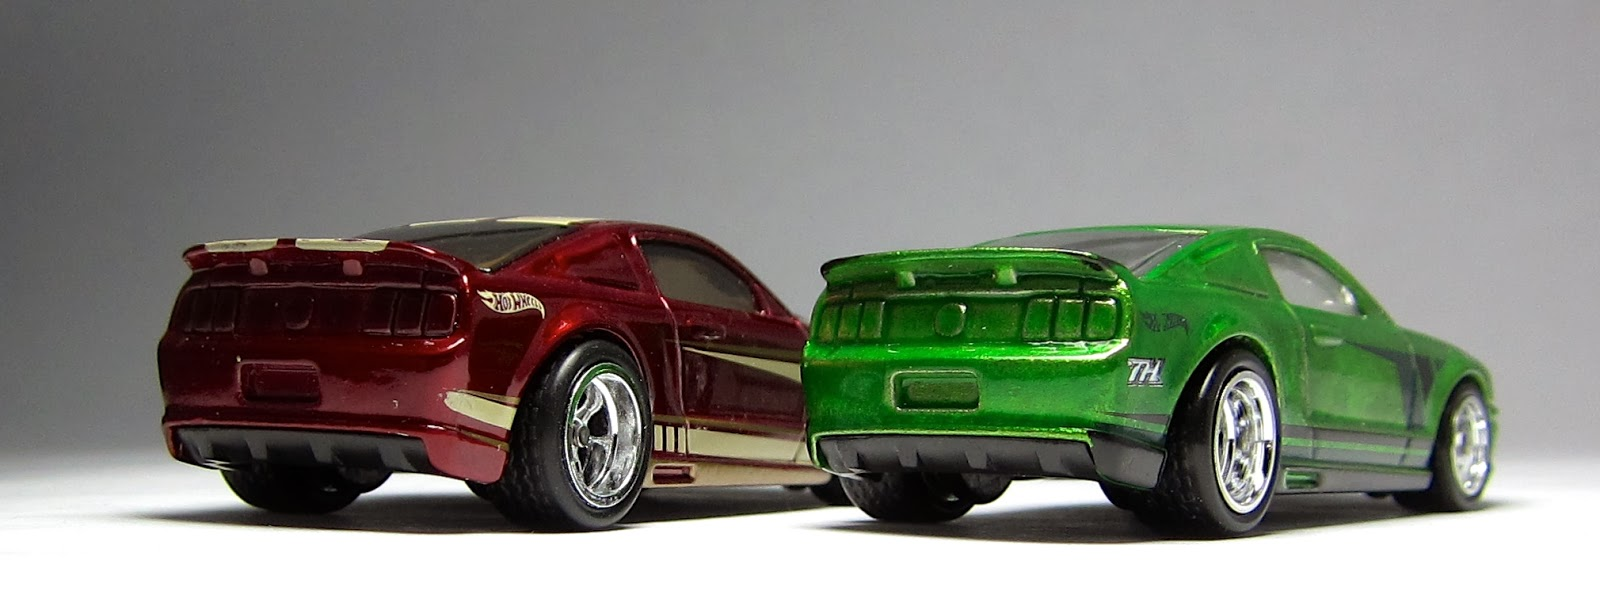 The last two Mustang Supers: